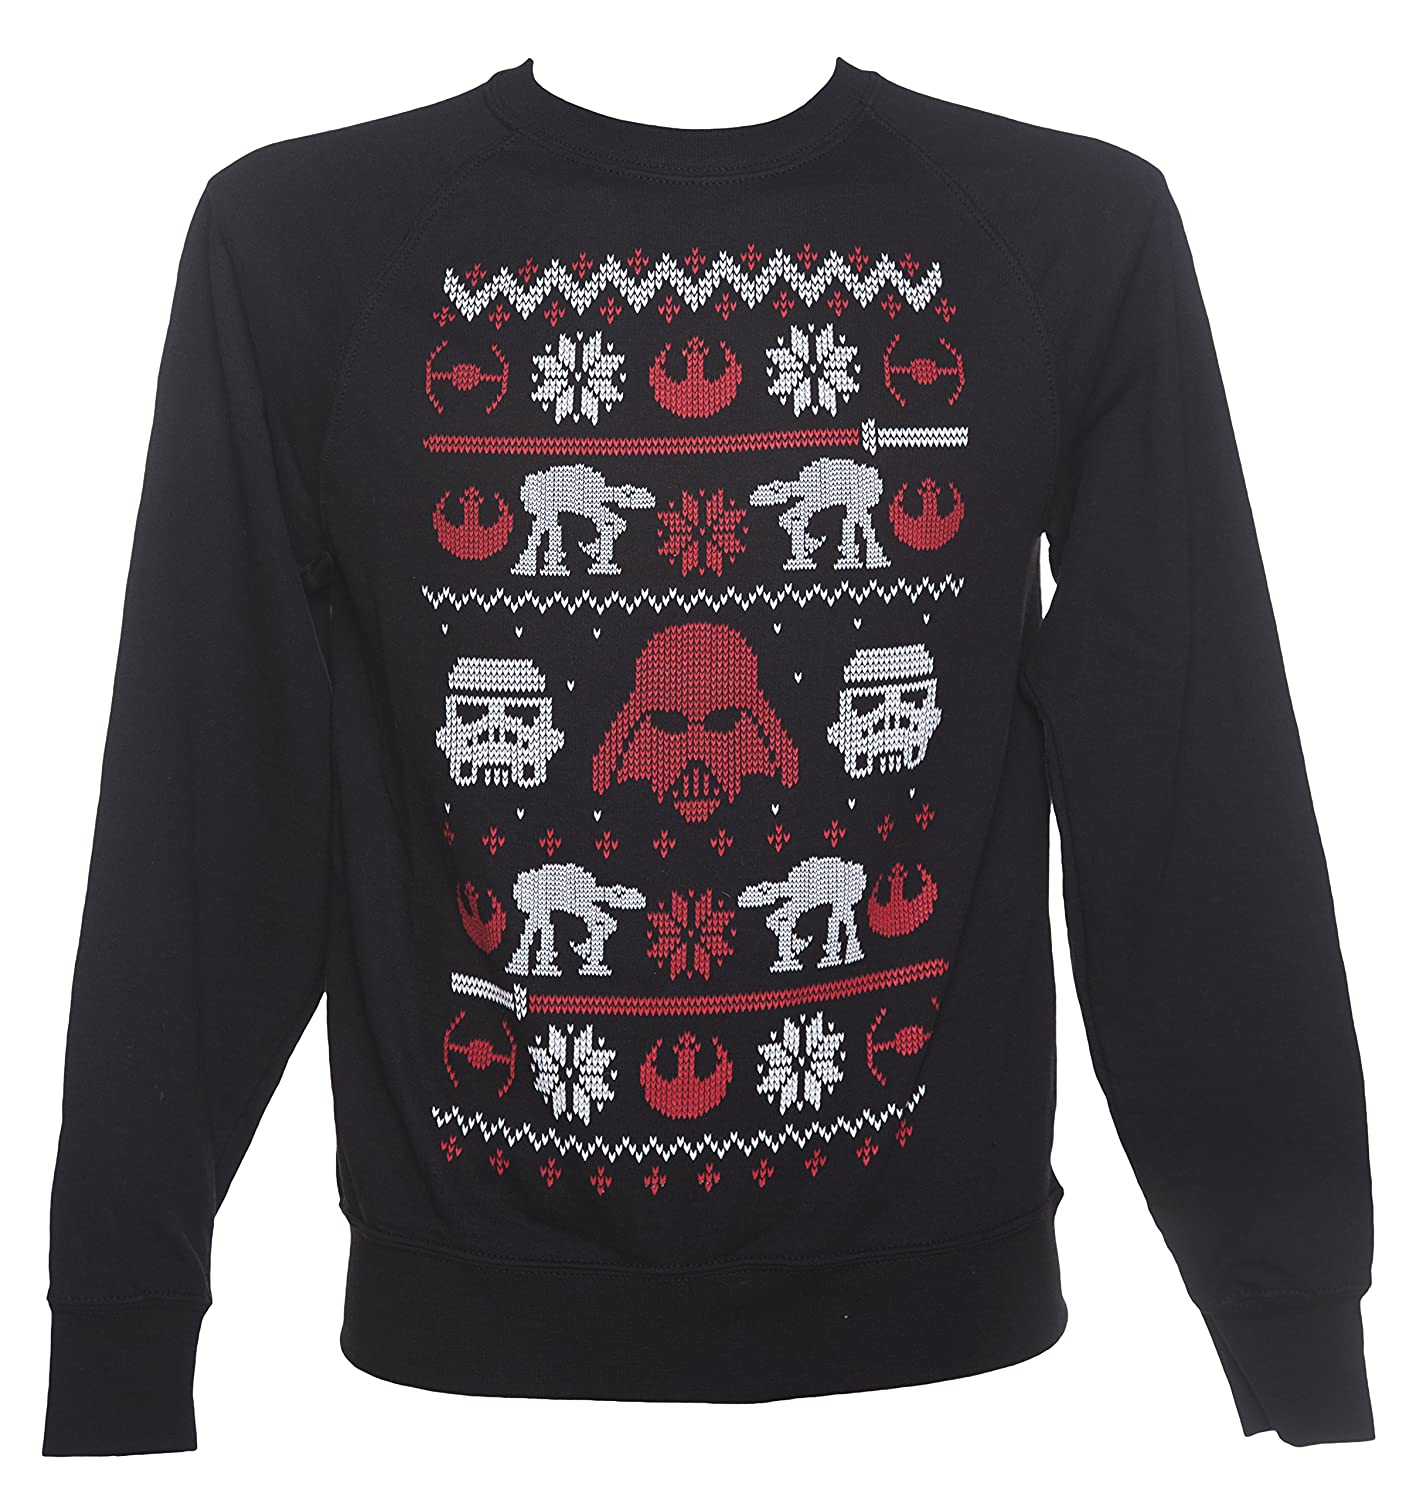 Mens Black Star Wars Fair Isle Knit Design Sweater Black/Charcoal ...